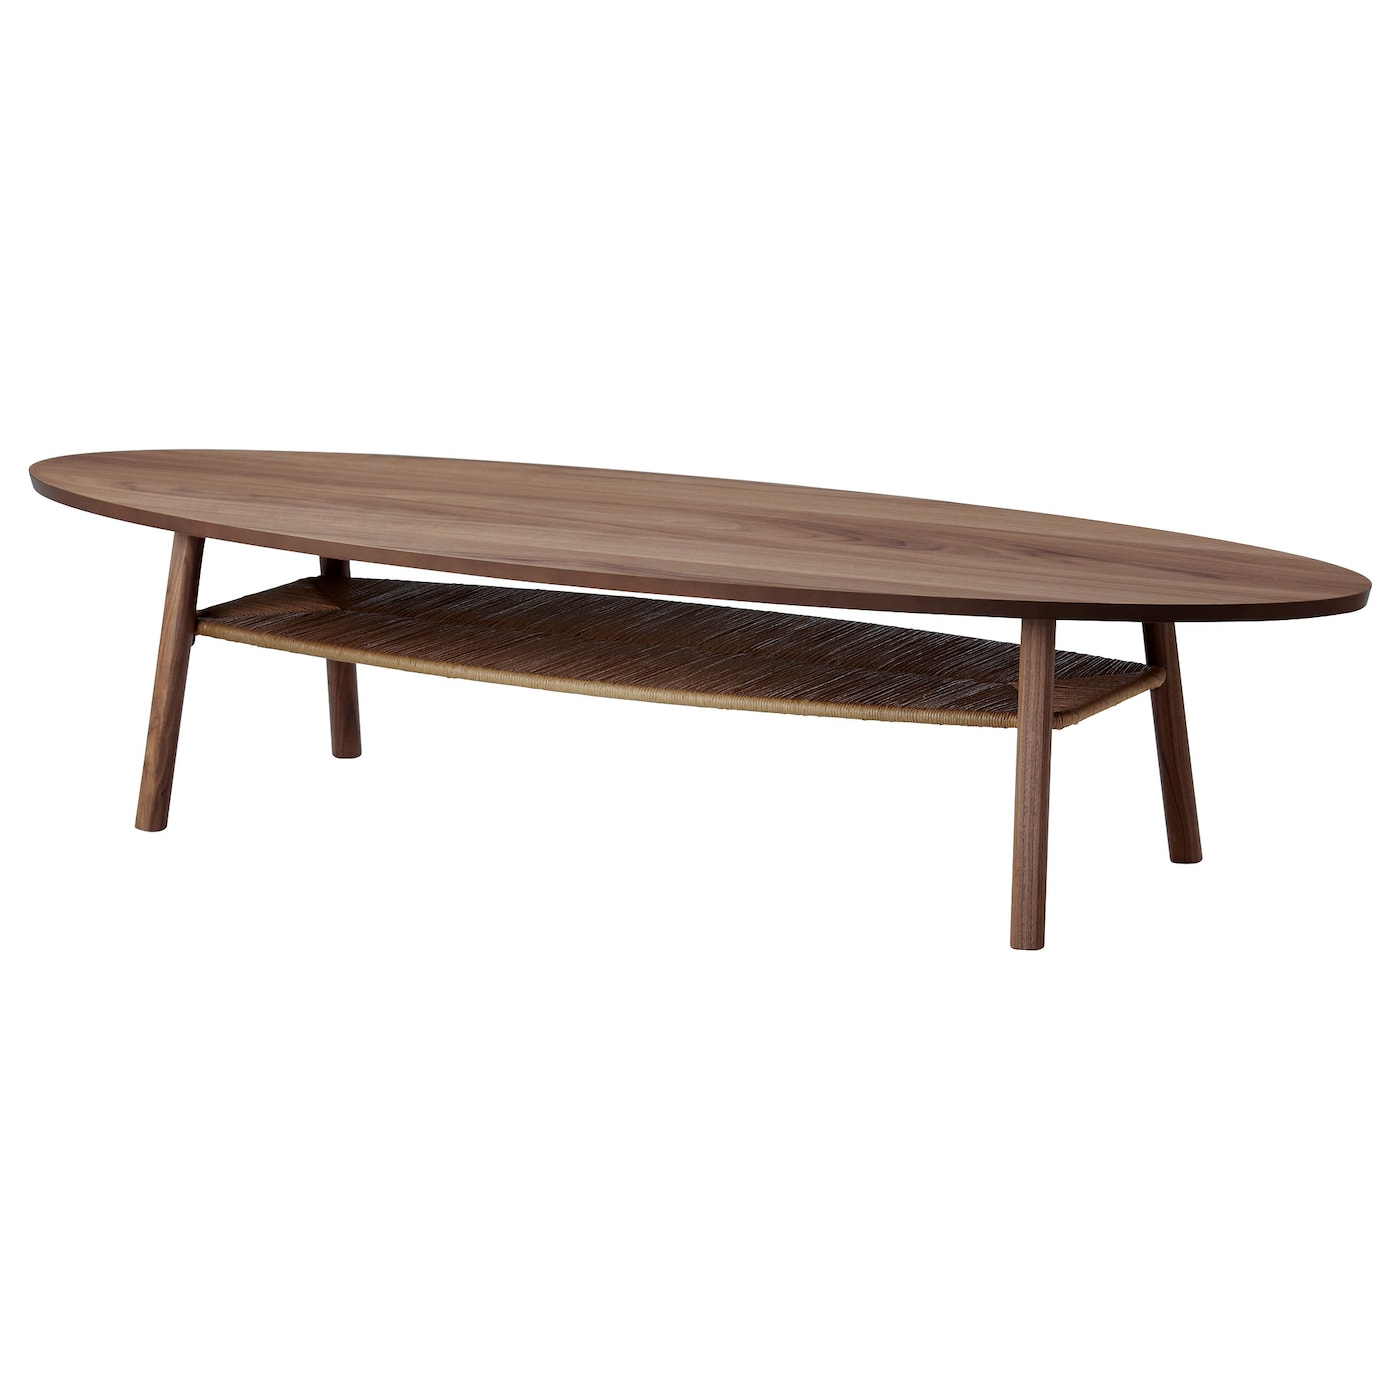 STOCKHOLM Coffee Table Walnut Veneer 180 X 59 Cm